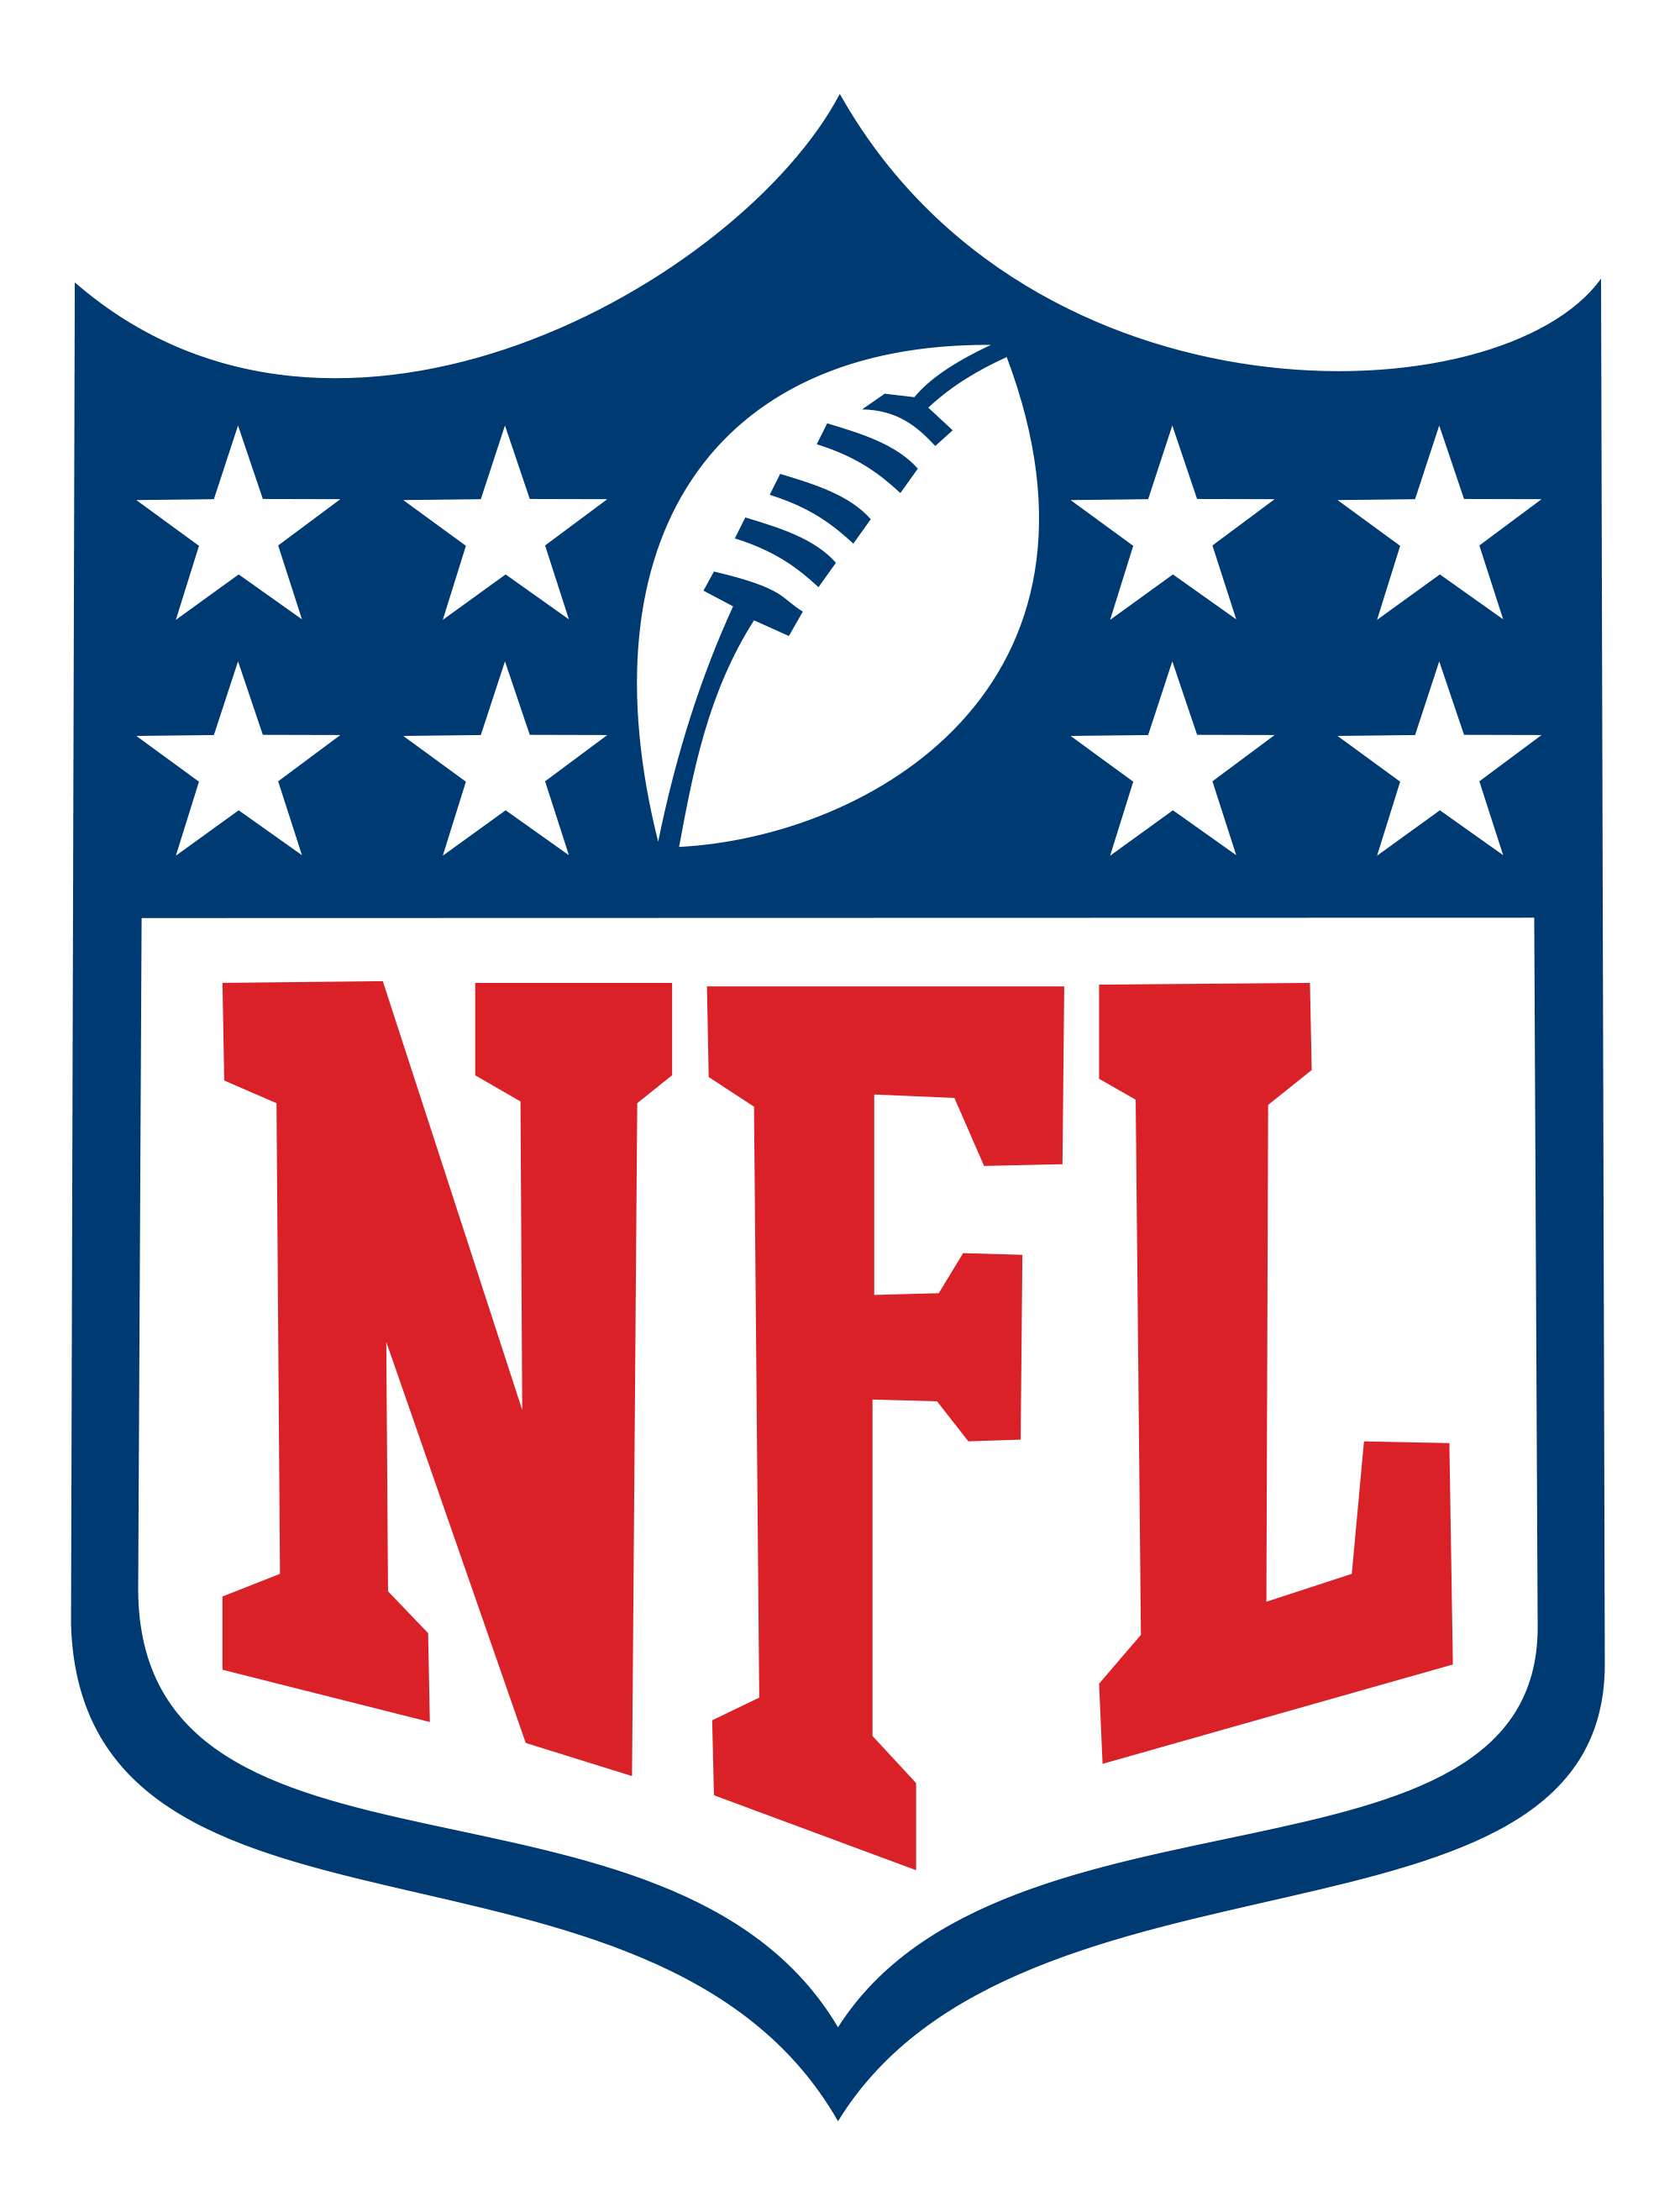 All nfl logos png. Logo transparent images pluspng